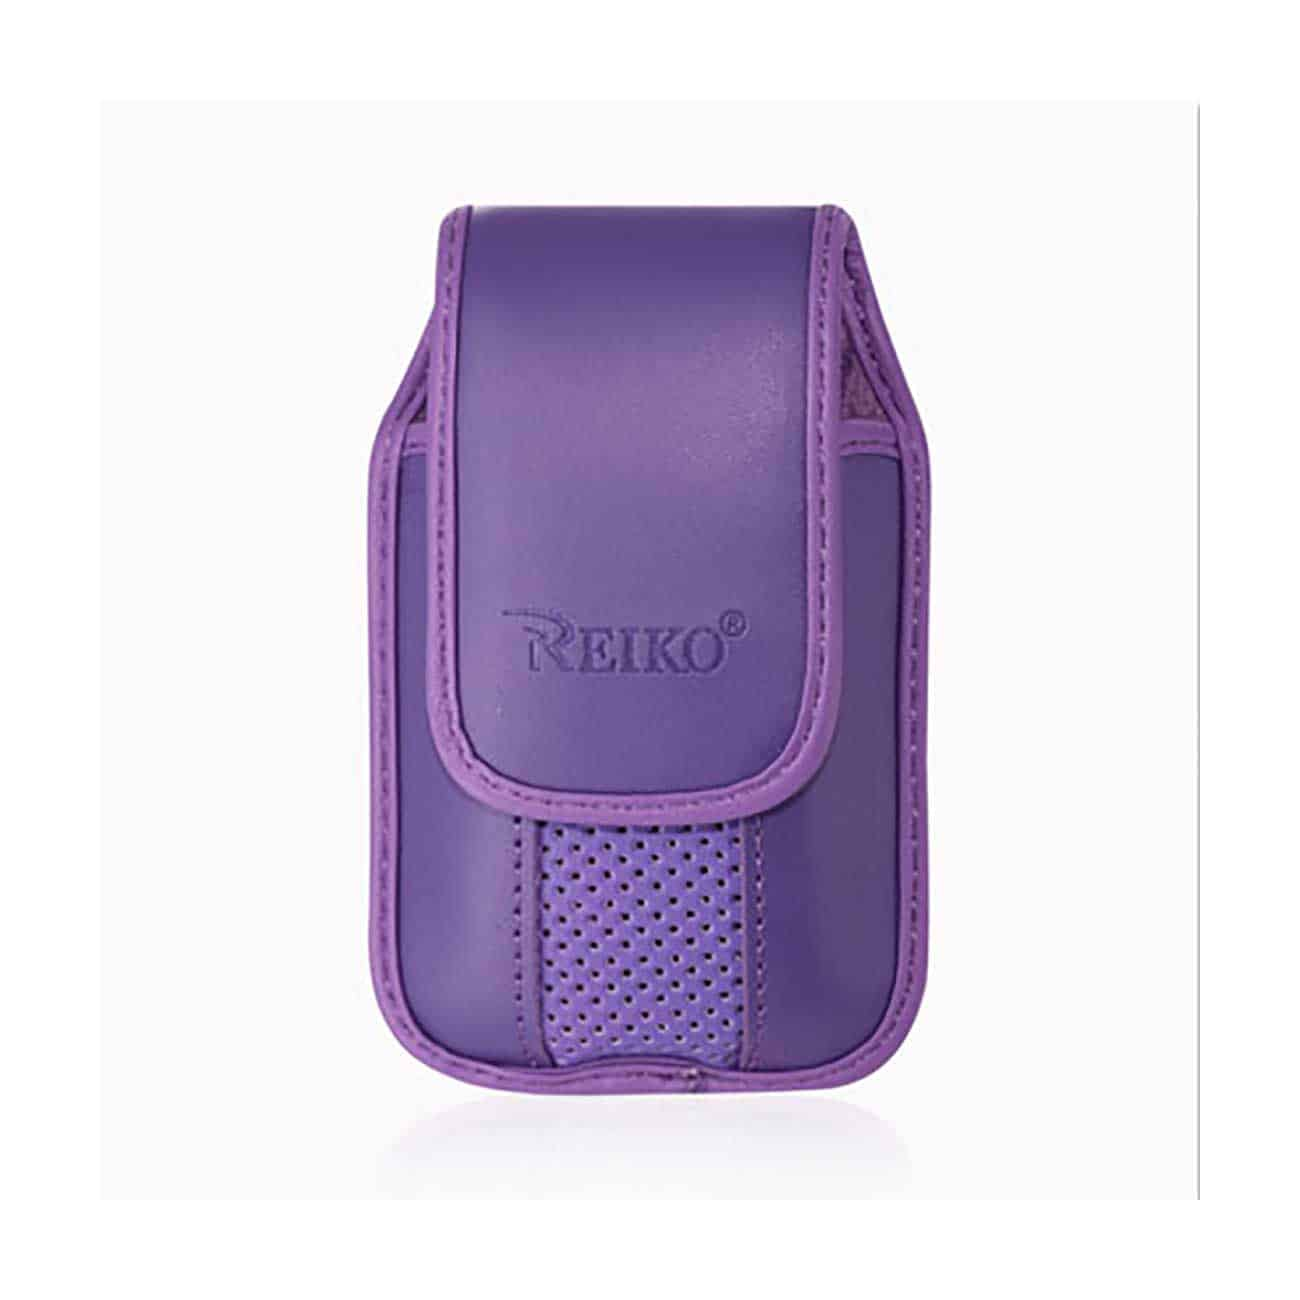 VERTICAL POUCH VP11A LG LX260 RUMOR PURPLE 4.3X2X0.7 INCHES